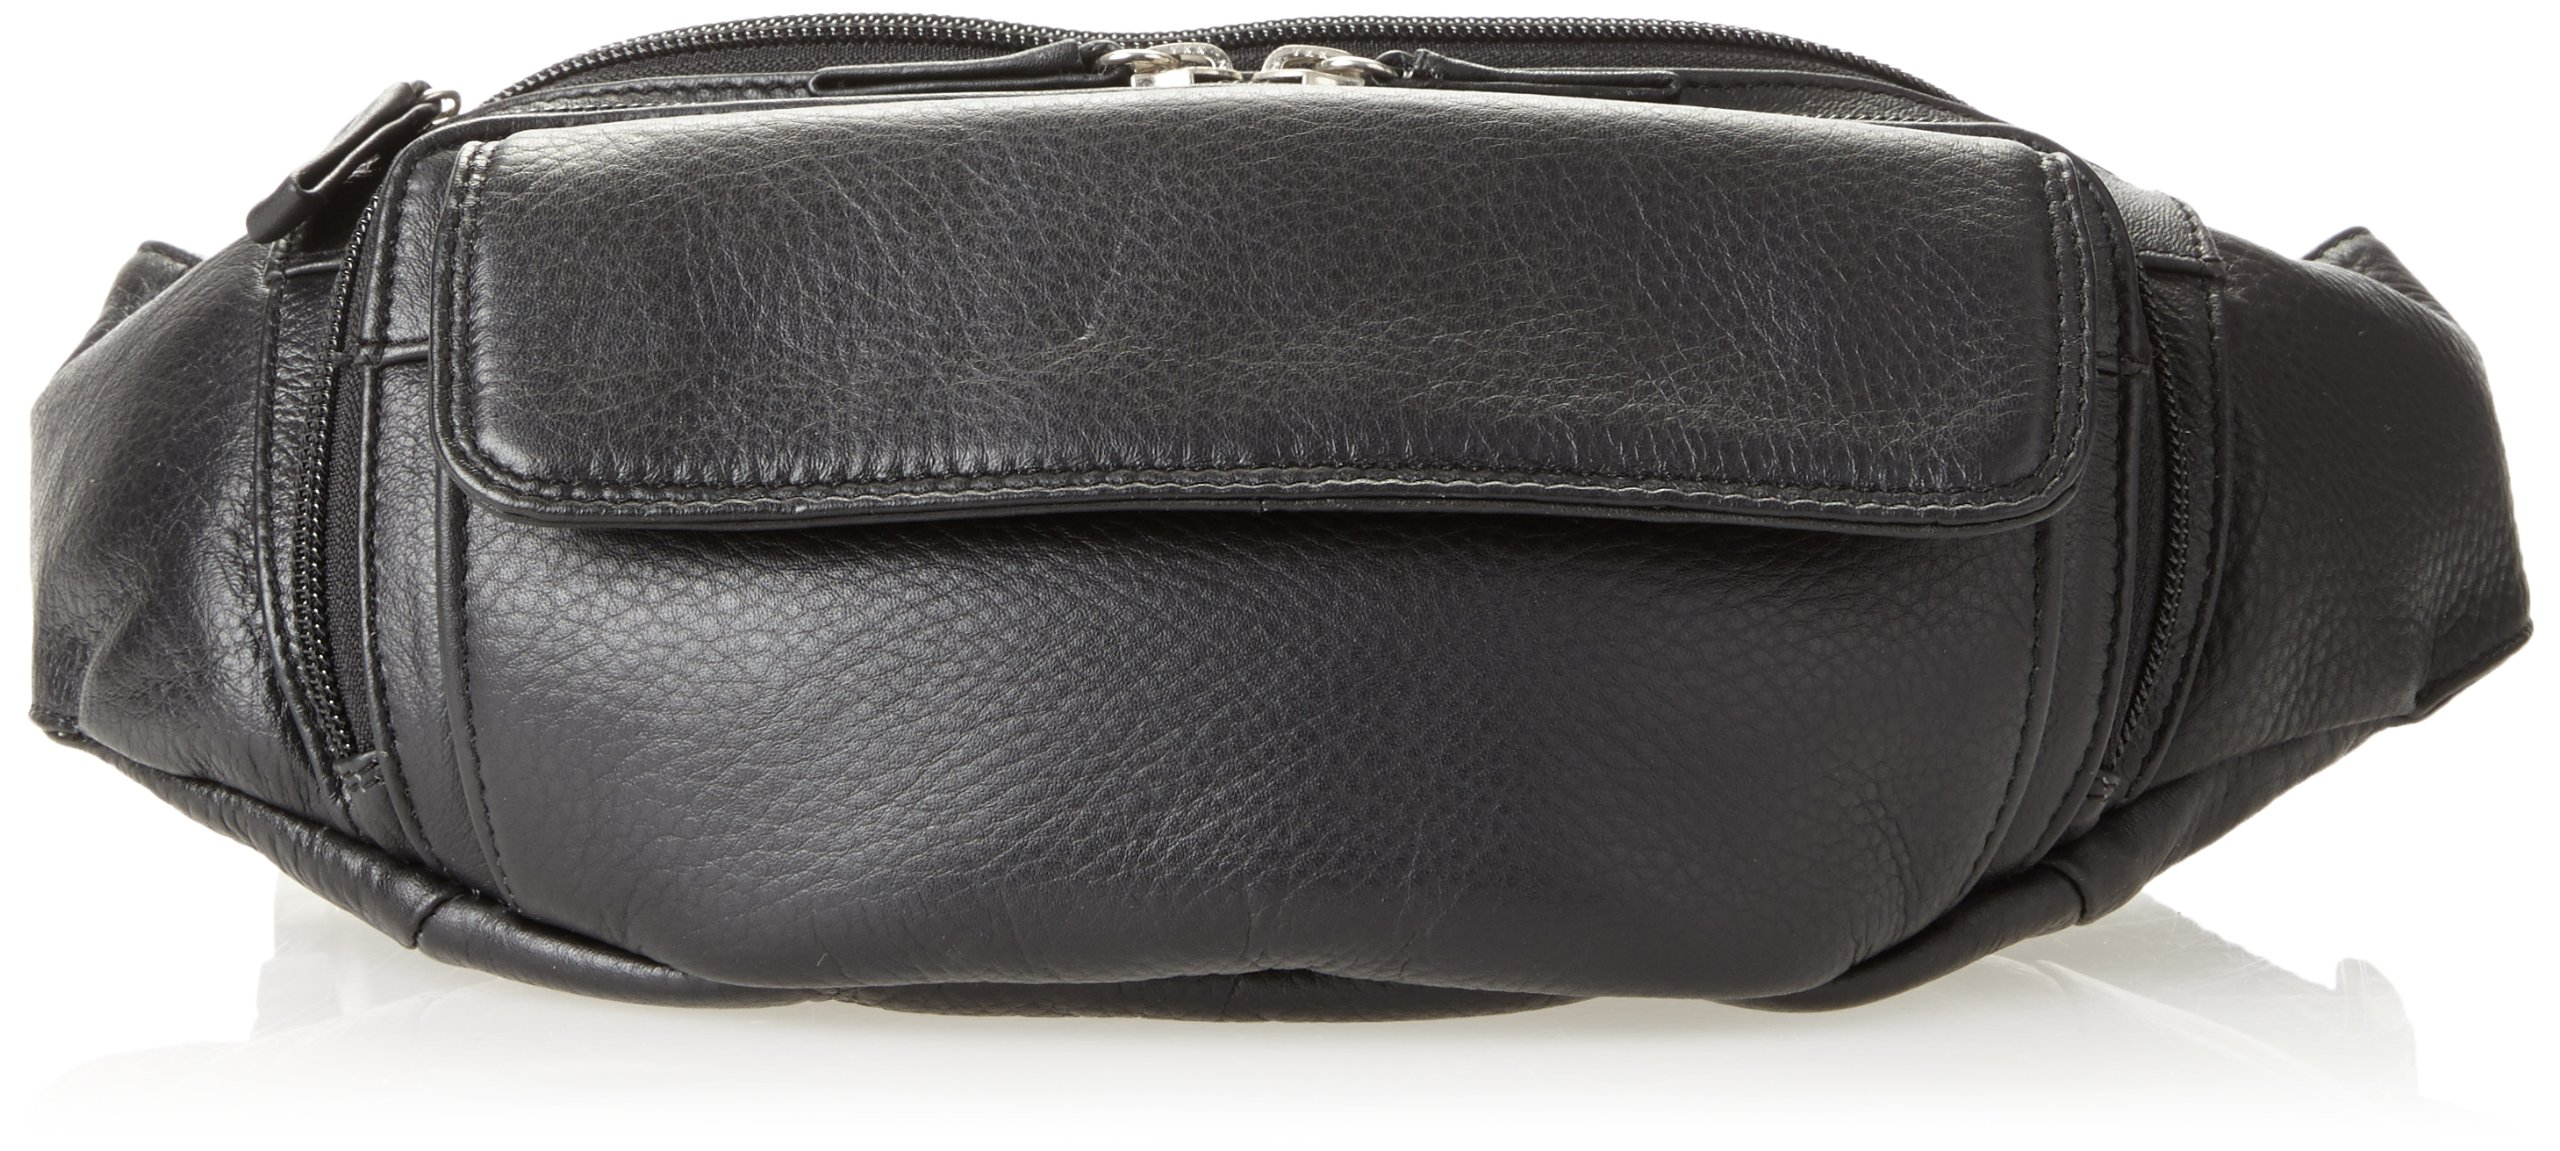 Derek Alexander Waist Bag, Black, One Size by Derek Alexander Leather